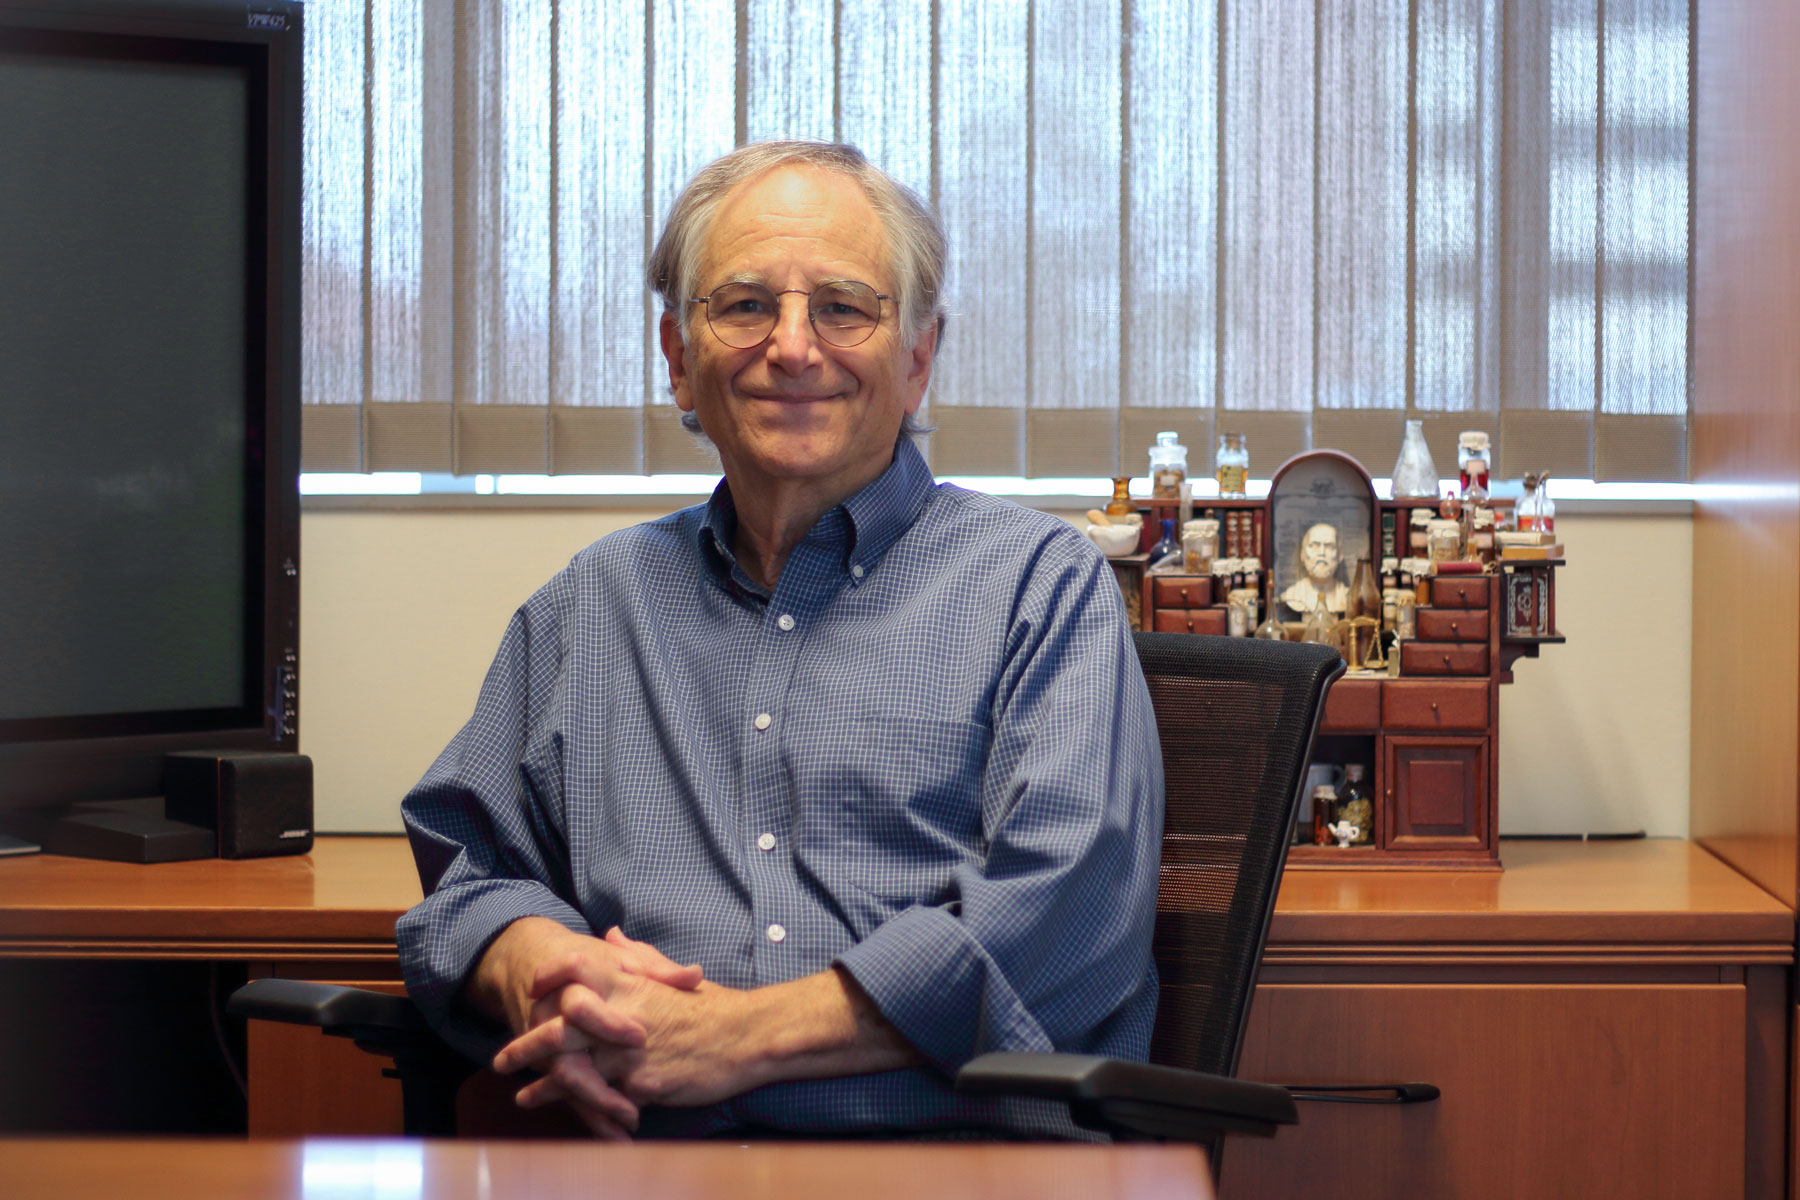 Len Adleman in his office at USC